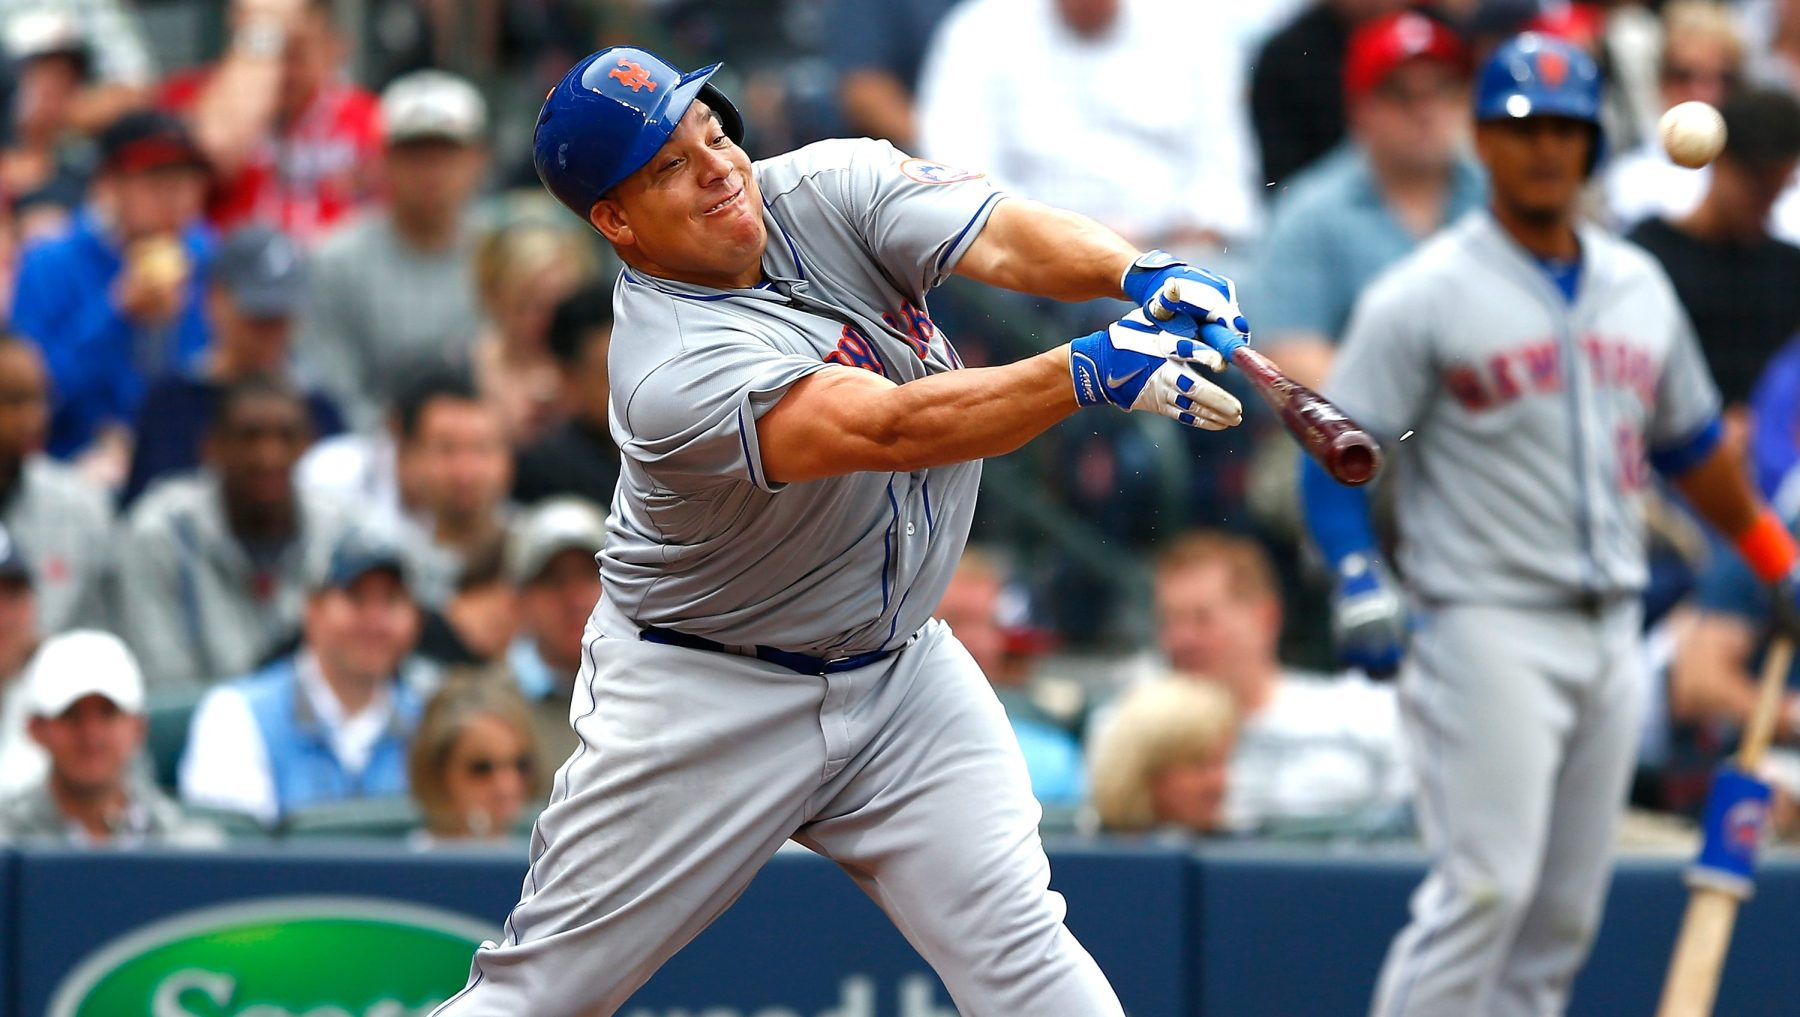 Bartolo Colon #40 of the New York Mets hits a RBI single into right field against the Atlanta Braves during the Braves opening series at Turner Field on April 12, 2015 in Atlanta, Georgia.  Wilmer Flores #4 scored on the single.  (Kevin C. Cox/Getty Images)